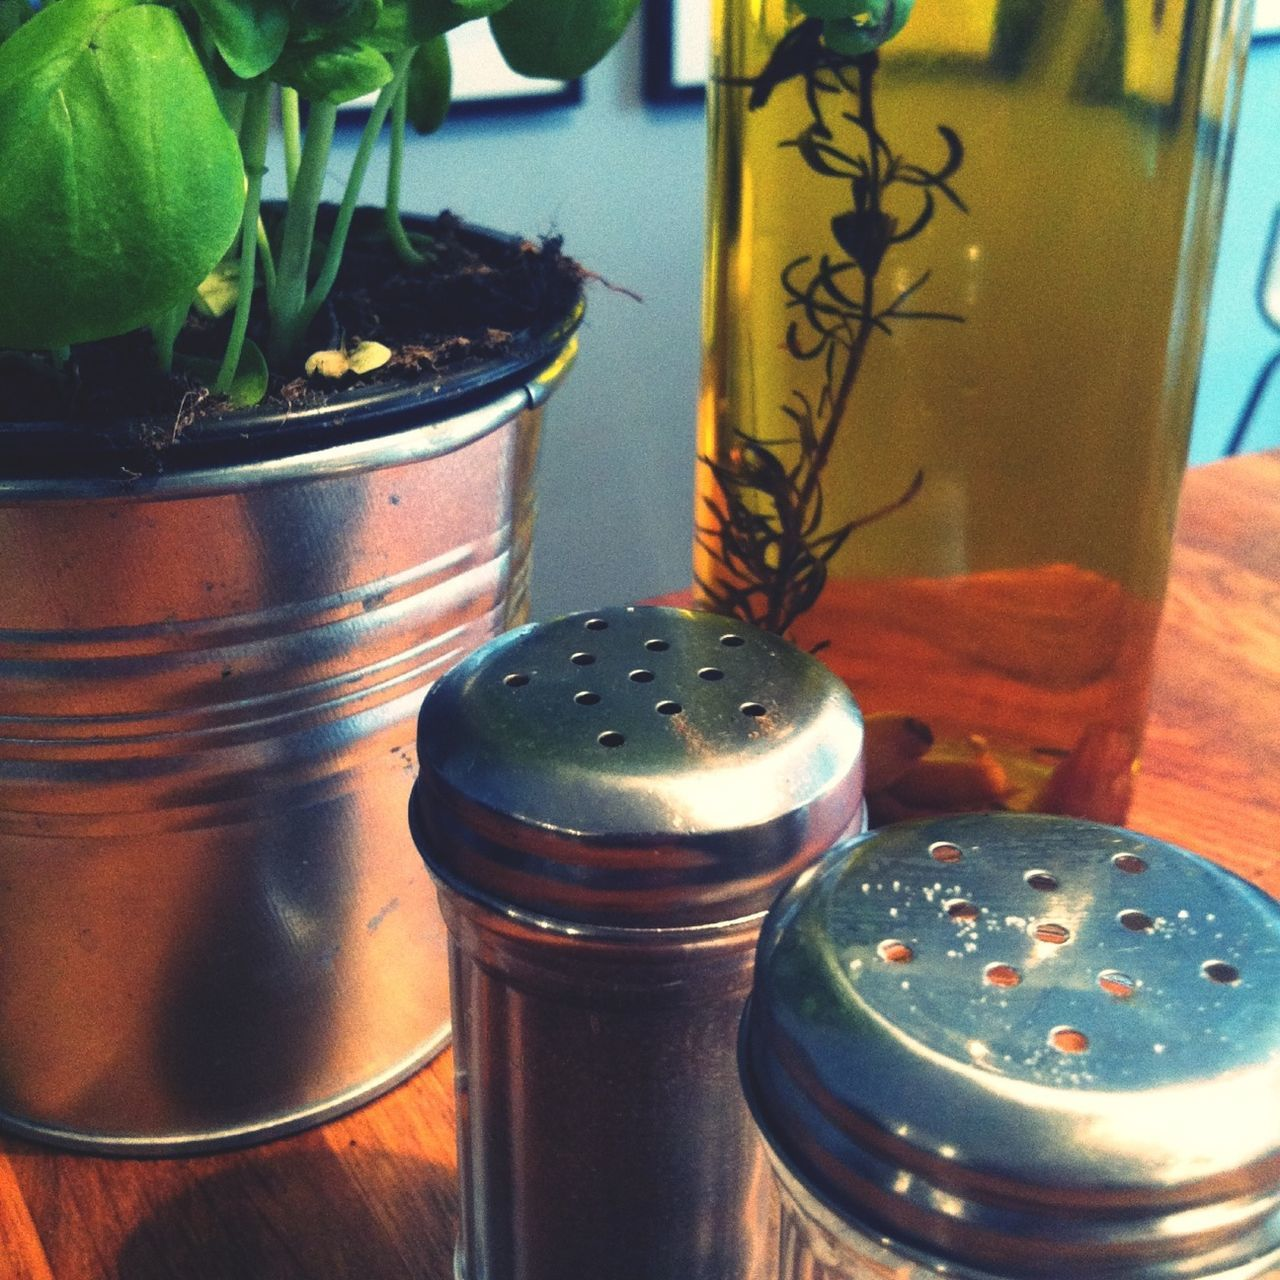 close-up, container, salt shaker, no people, table, indoors, plant, day, freshness